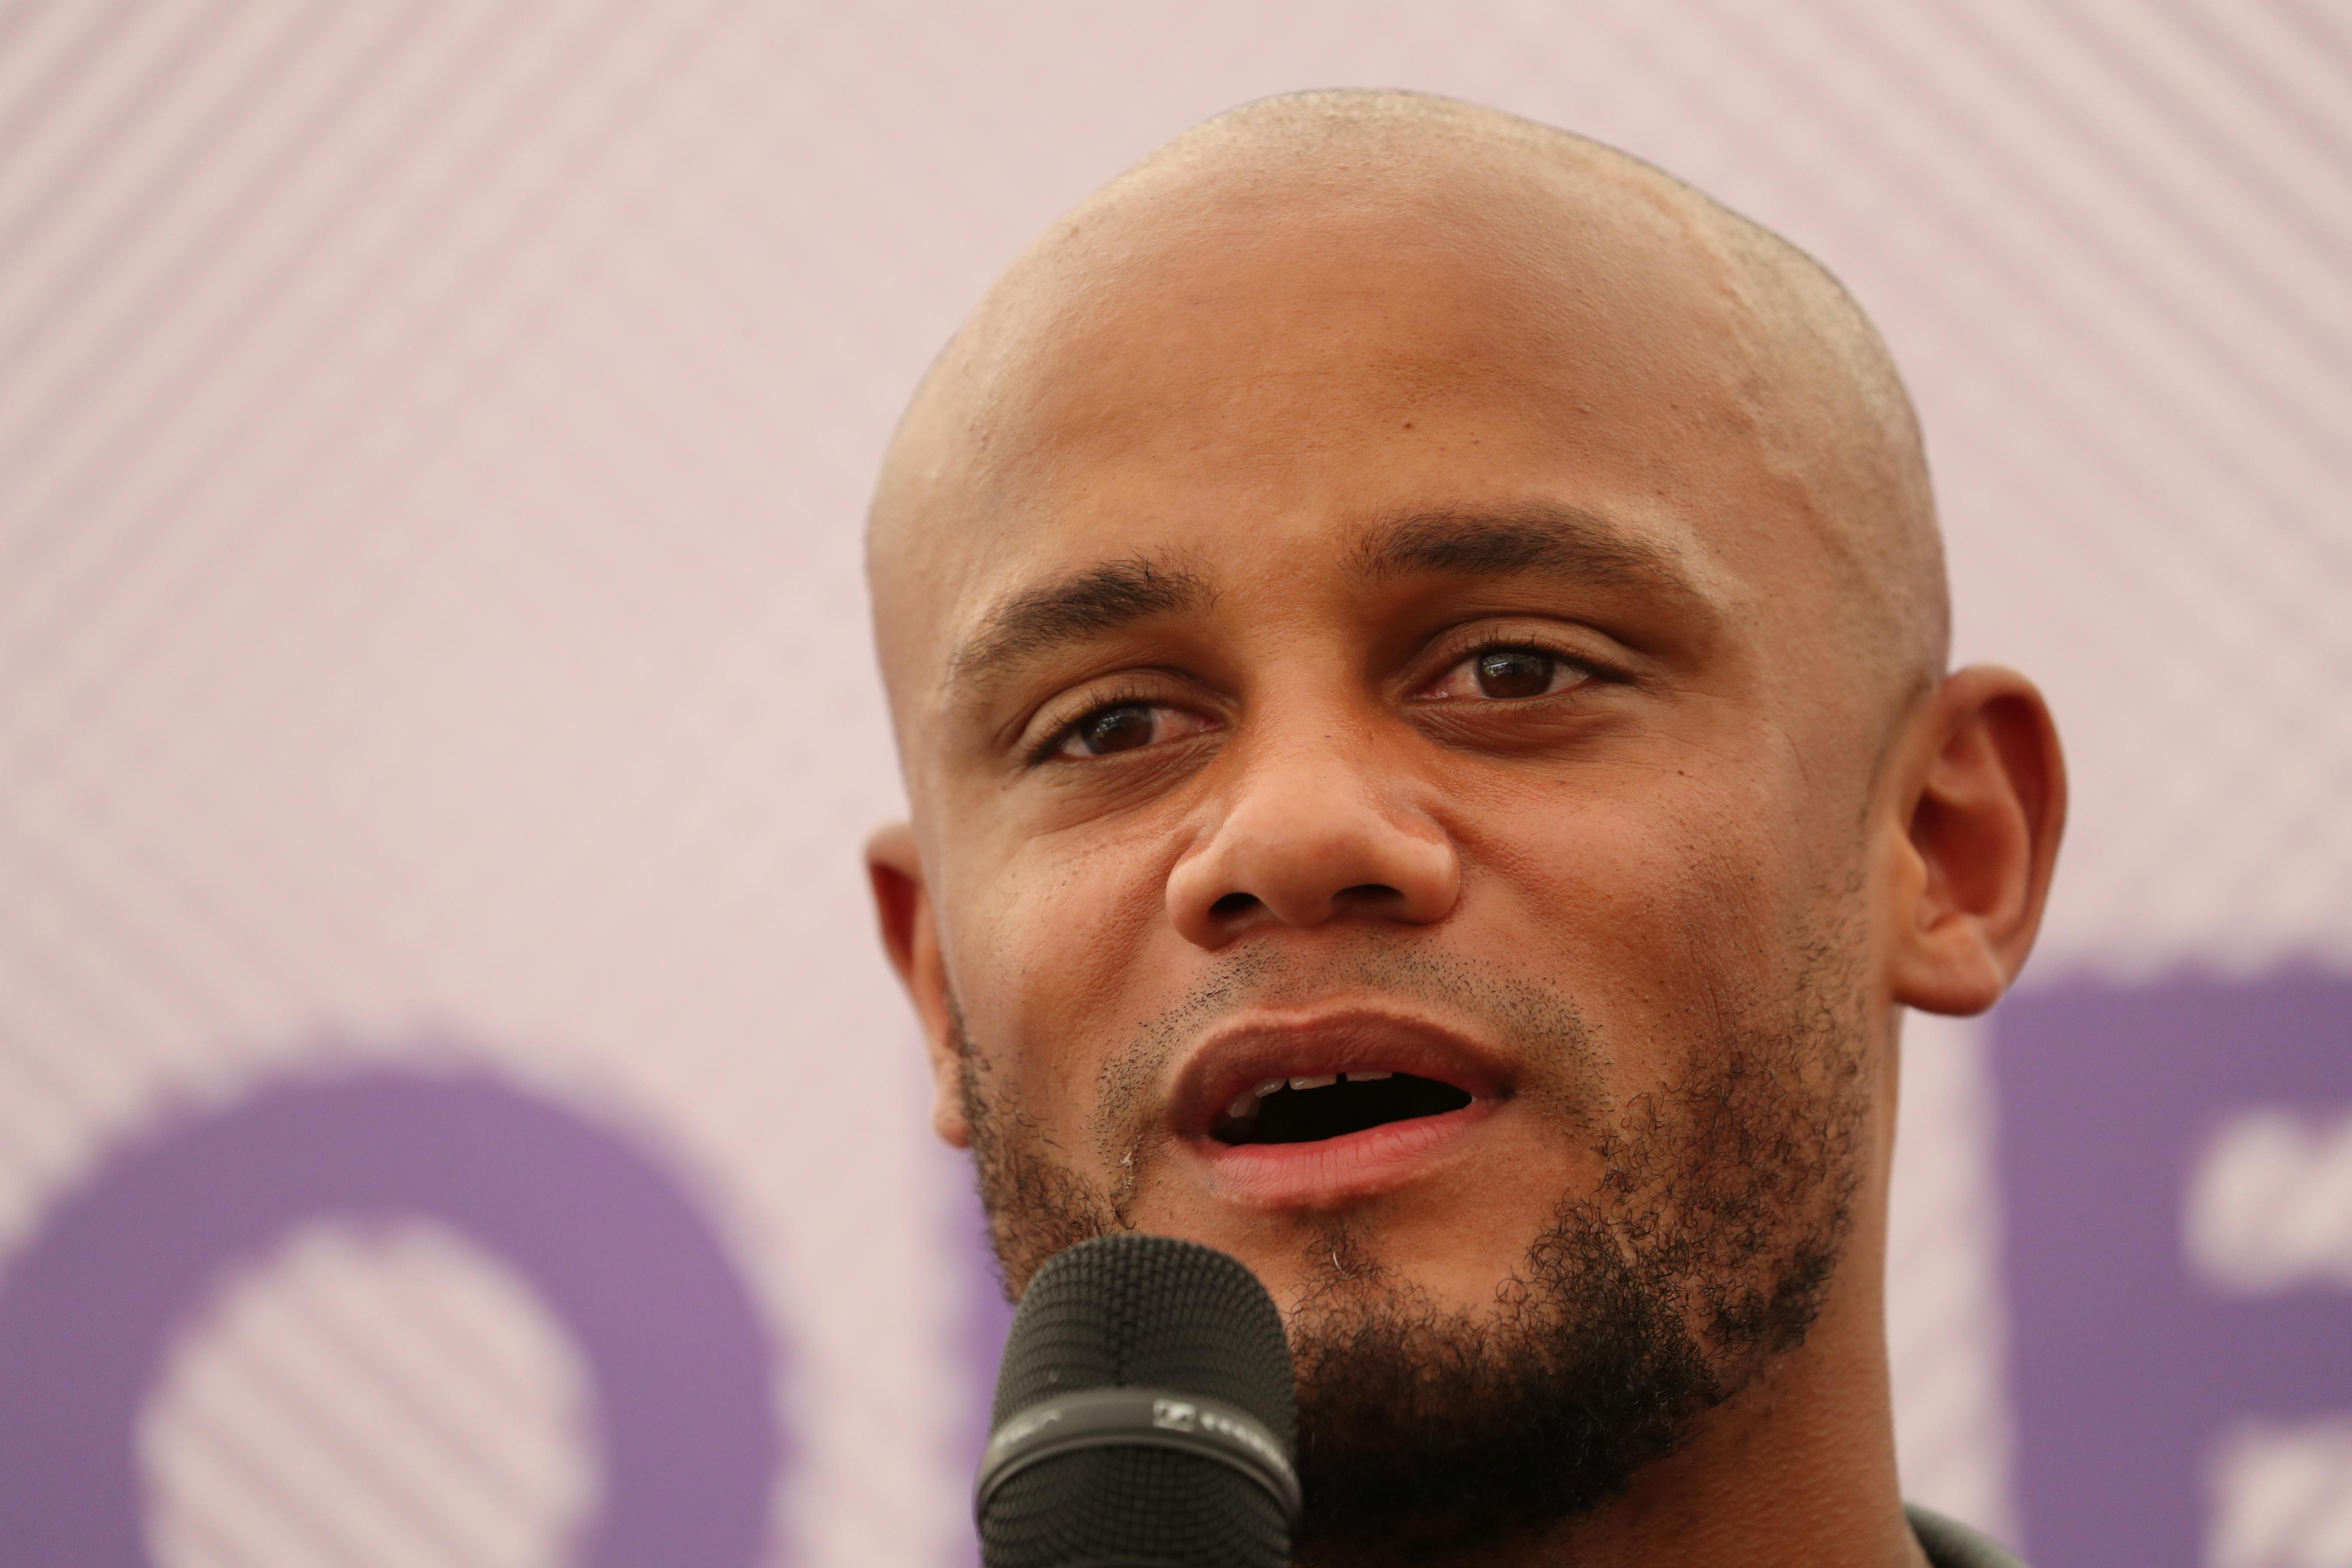 Anderlecht coach Kompany takes on new match-day role